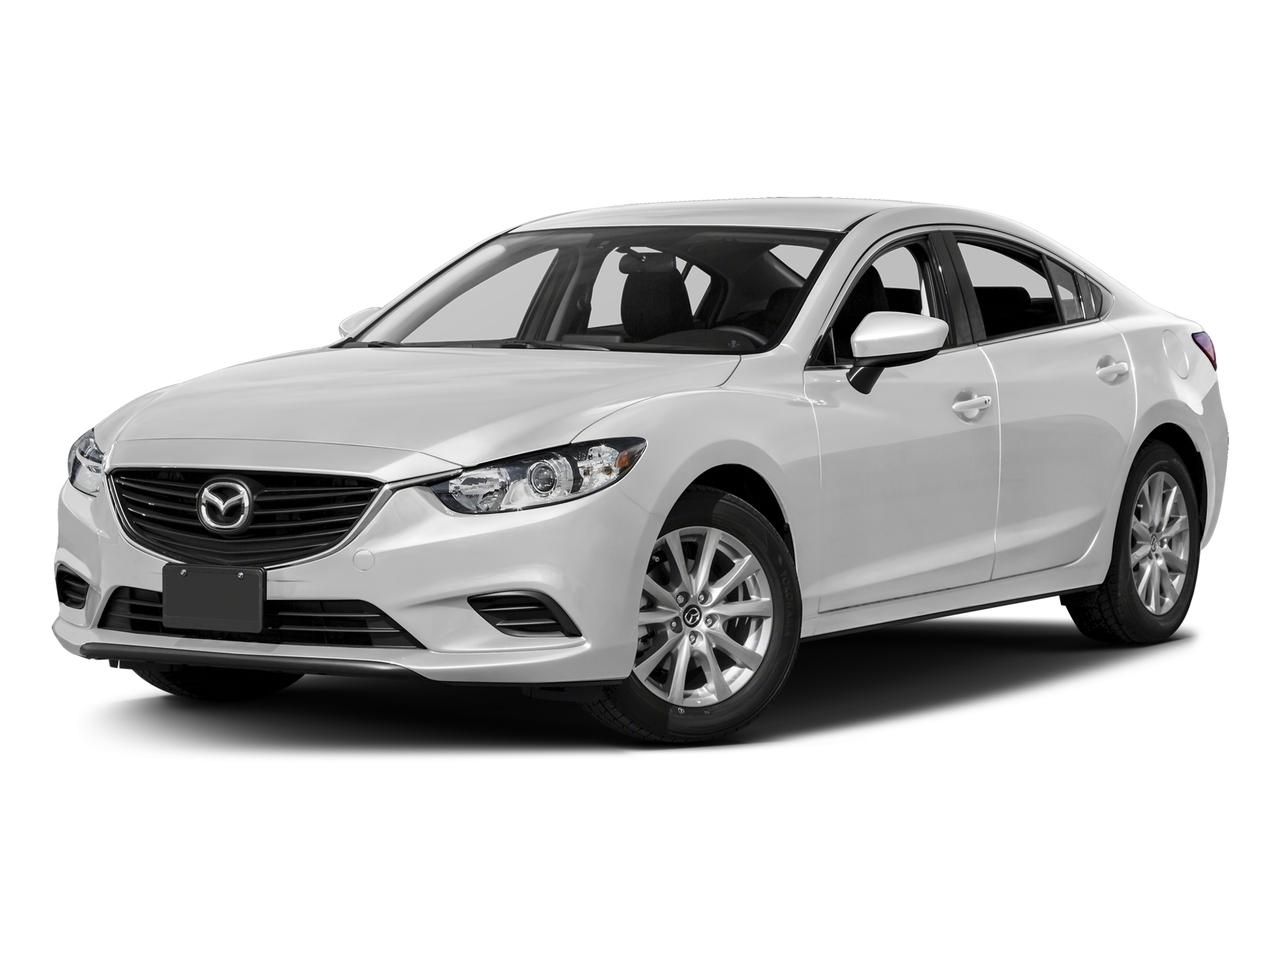 2016 Mazda Mazda6 Vehicle Photo in Wilmington, NC 28405